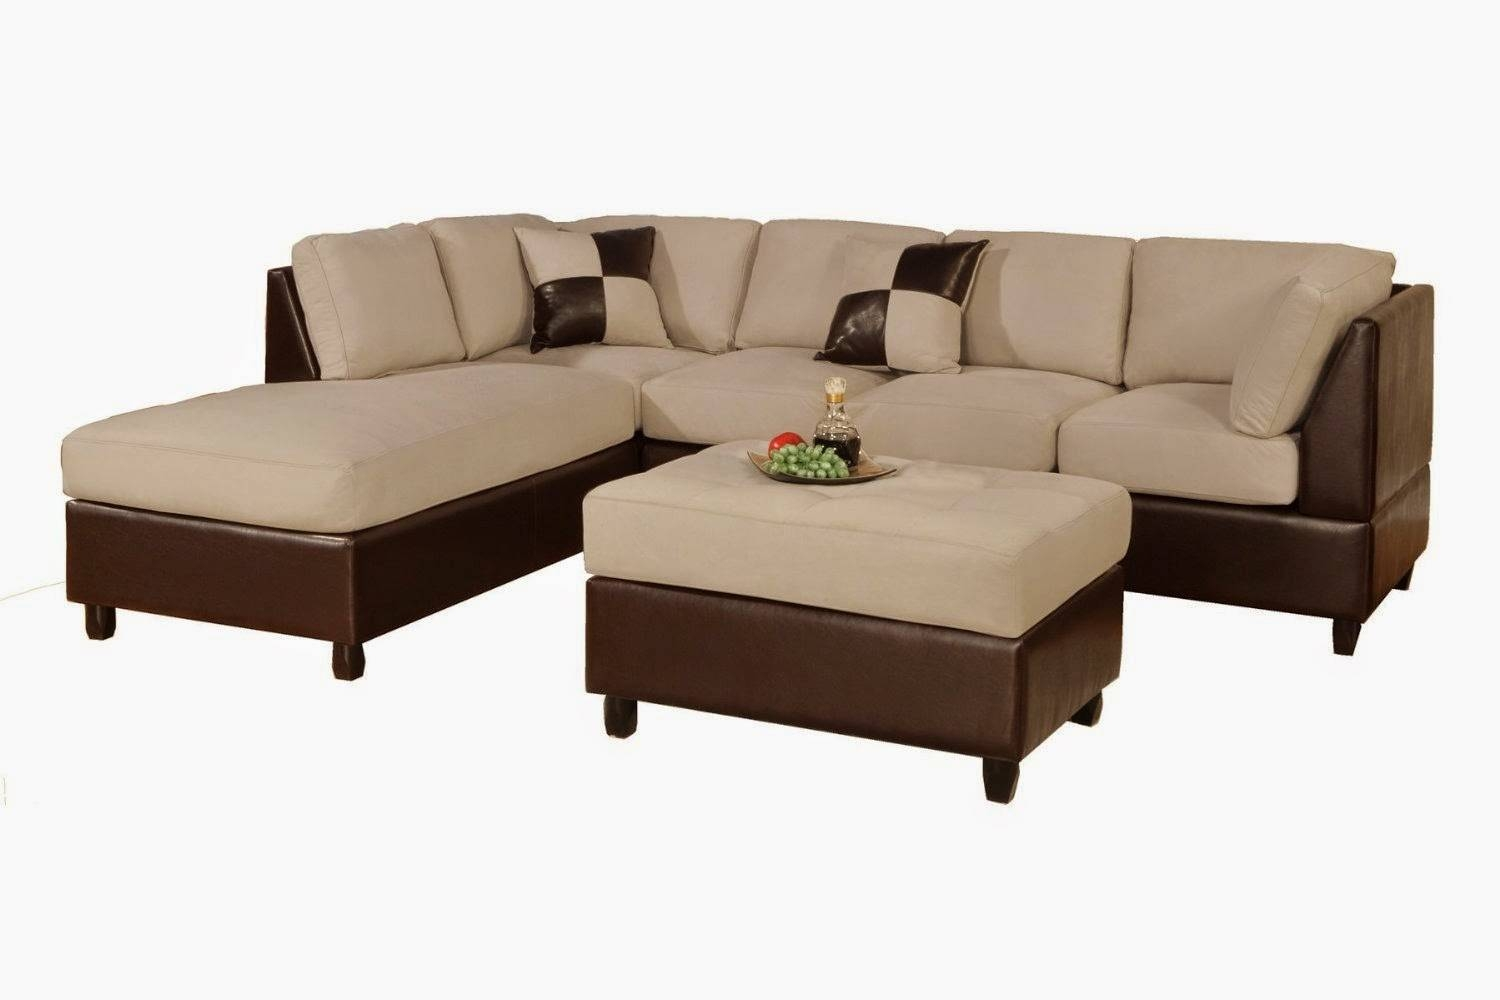 L Shaped Leather Sofa And Fashionable Corner Sectional L Shape regarding Leather L Shaped Sectional Sofas (Image 15 of 30)